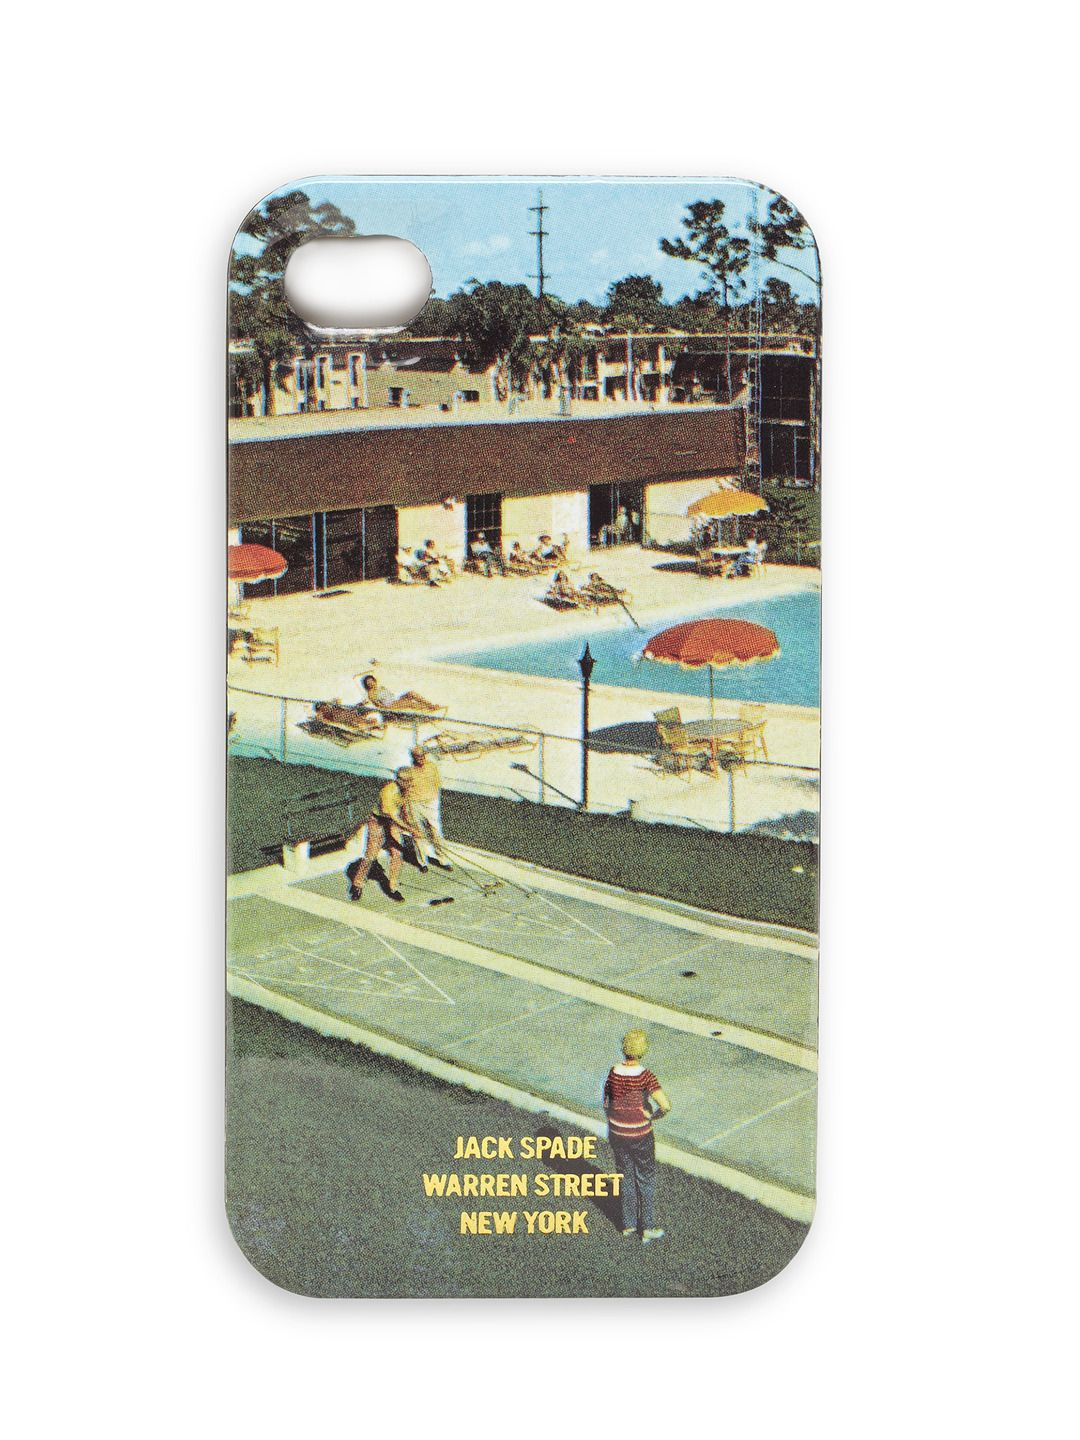 Jack Spade Shuffleboard iPhone Case. (With images